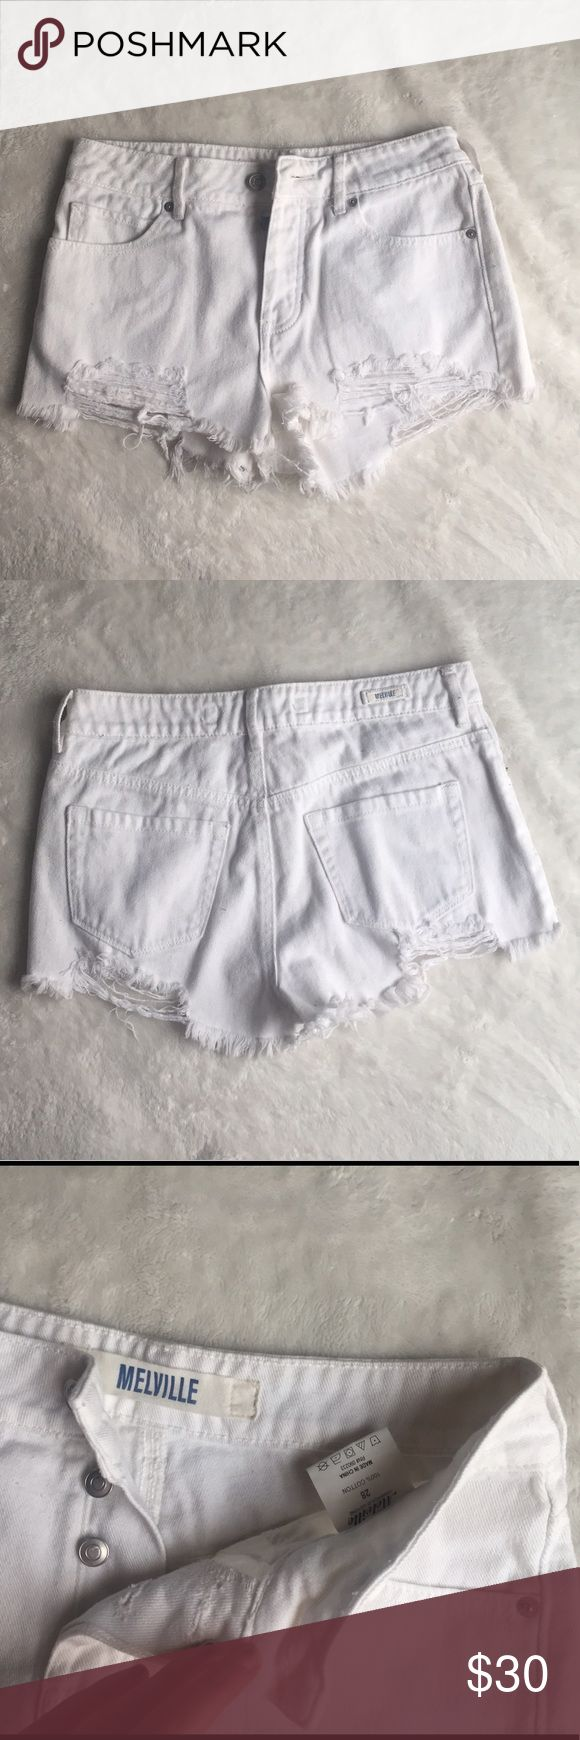 Brandy Melville High Waist White Distressed Shorts Brandy Melville distressed white high waist shorts. Only worn once, no stains. Size 28 but personally I think they fit smaller. Brandy Melville Shorts Jean Shorts